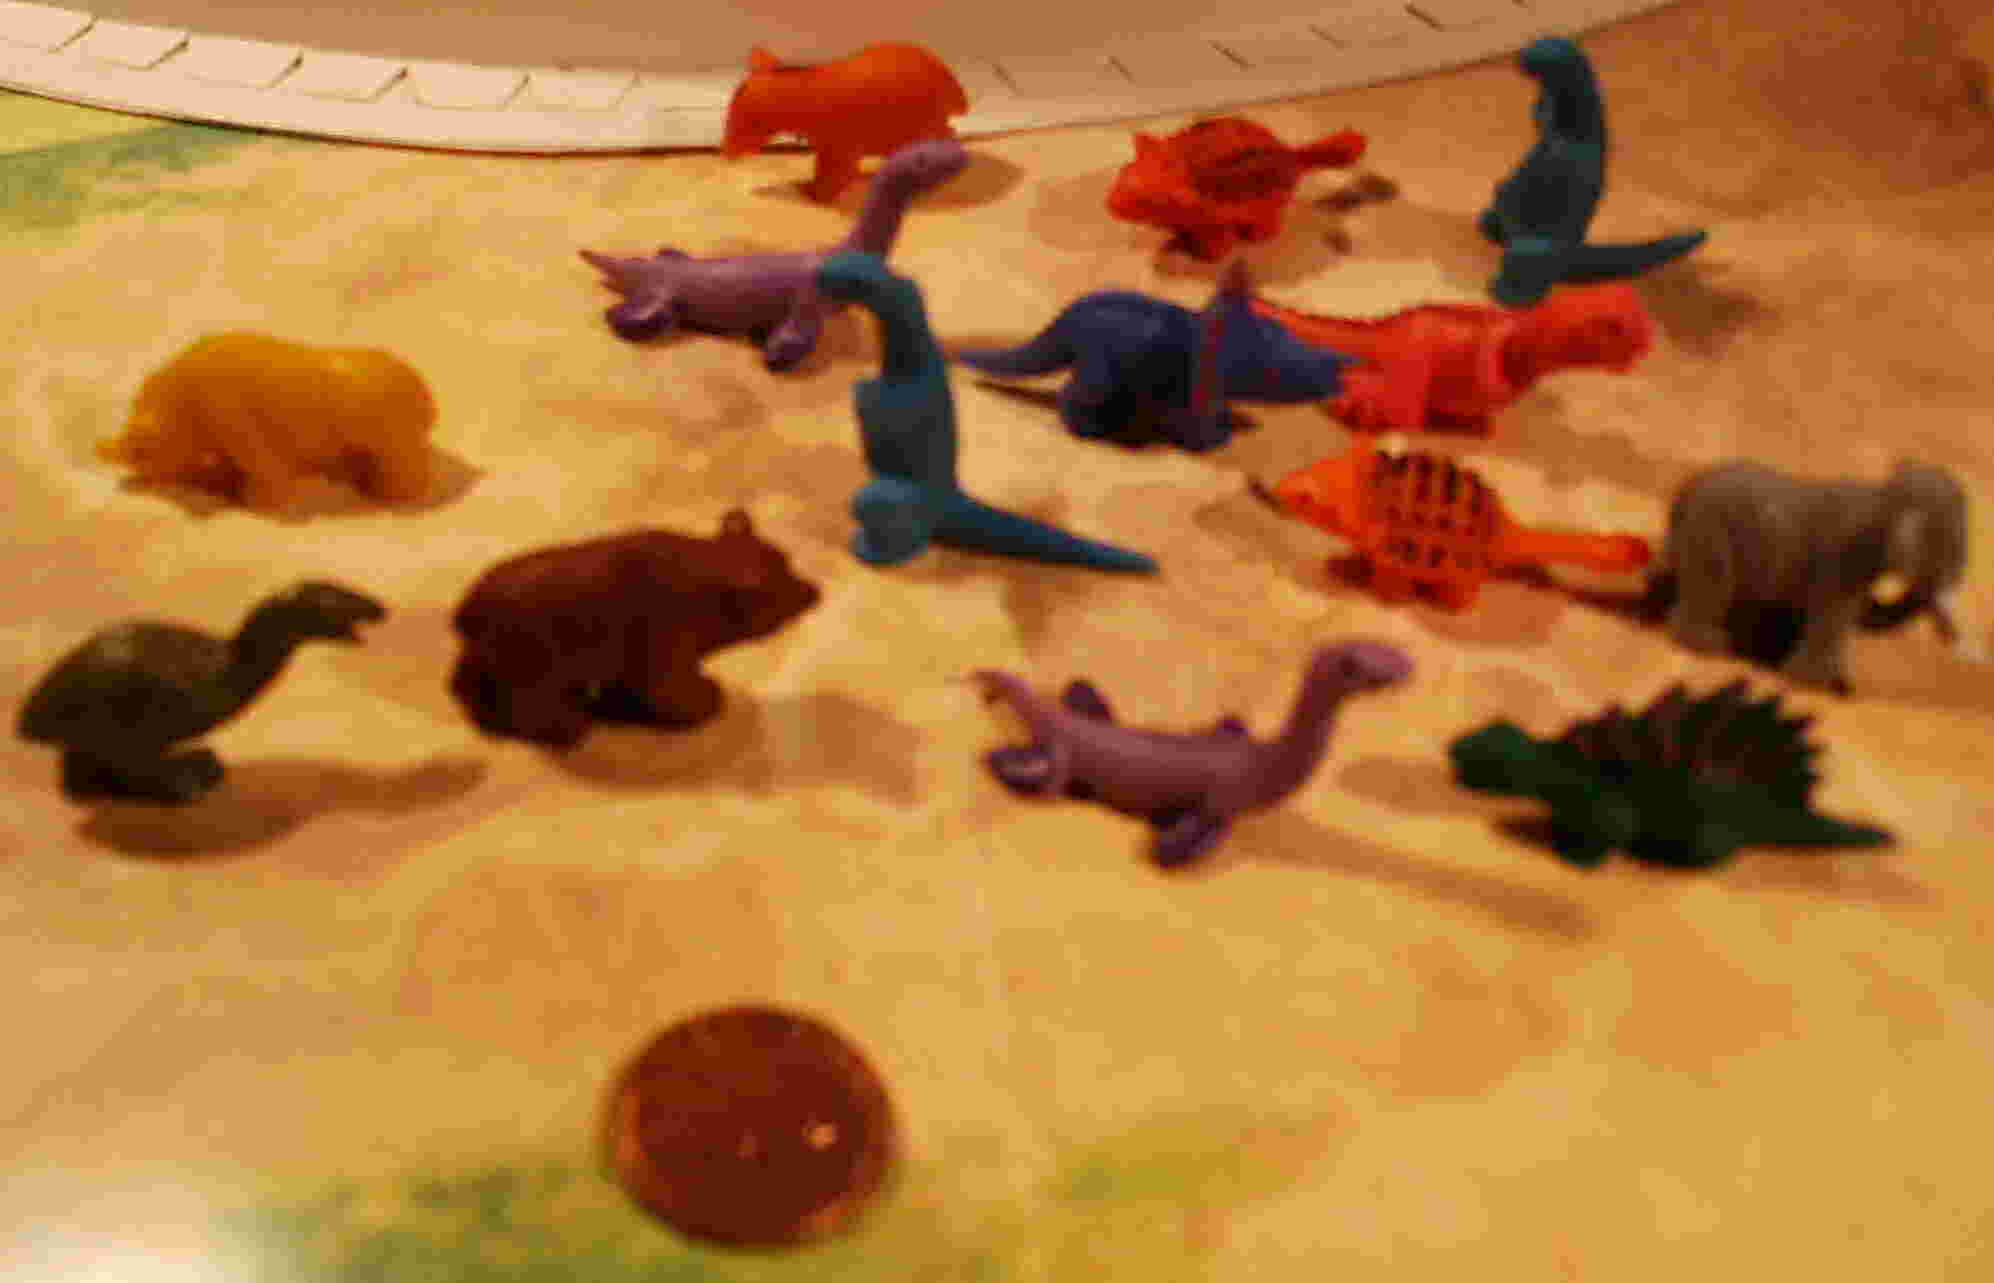 The Schleich Company Provides A Range Of Dinosaur Figures